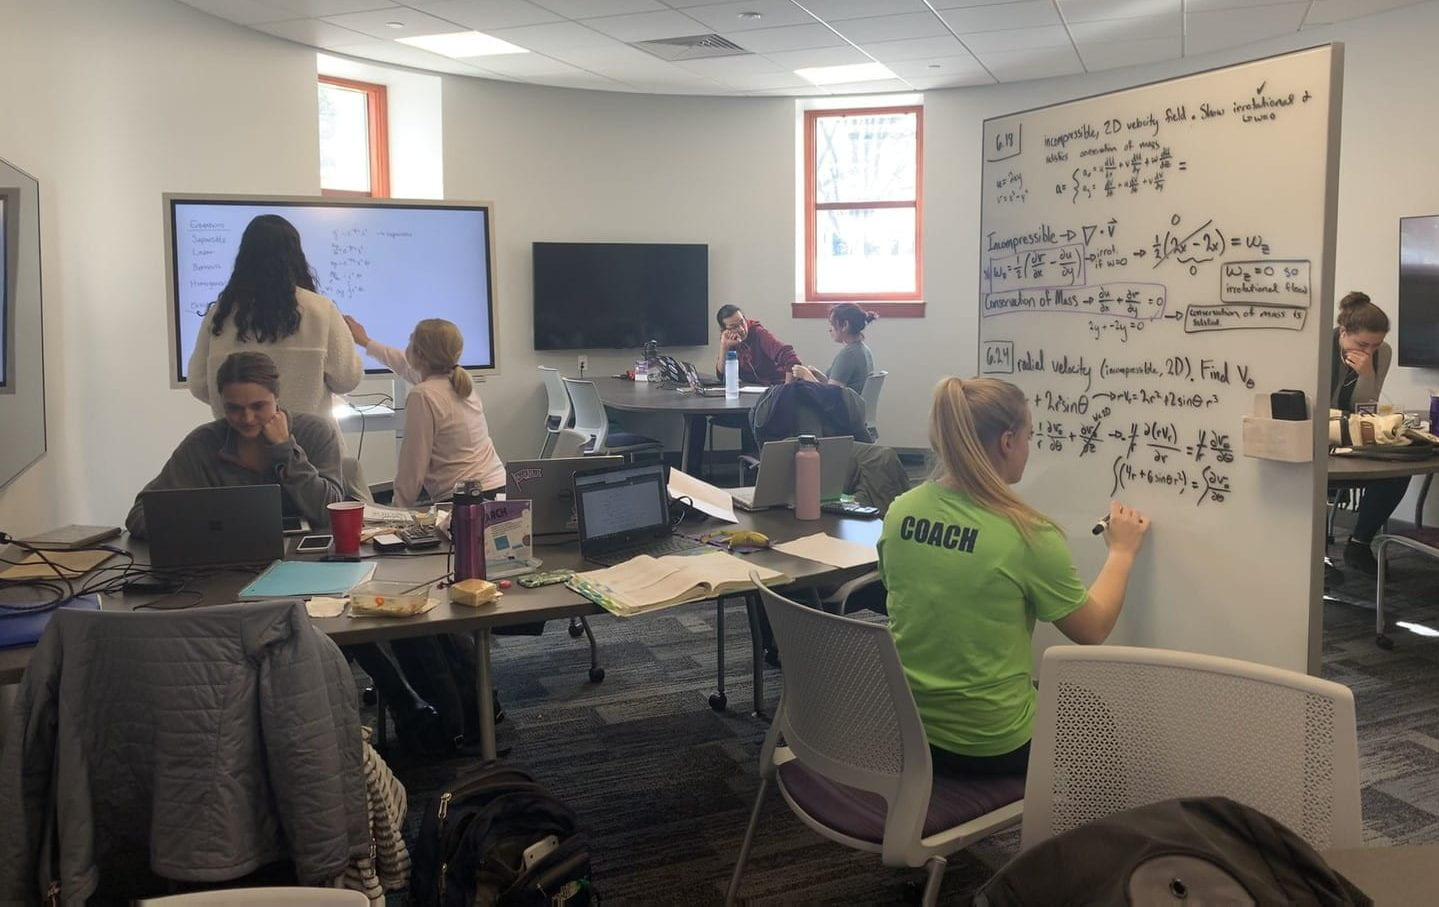 Several students study for exams using a white board, digital monitor, laptops and books.